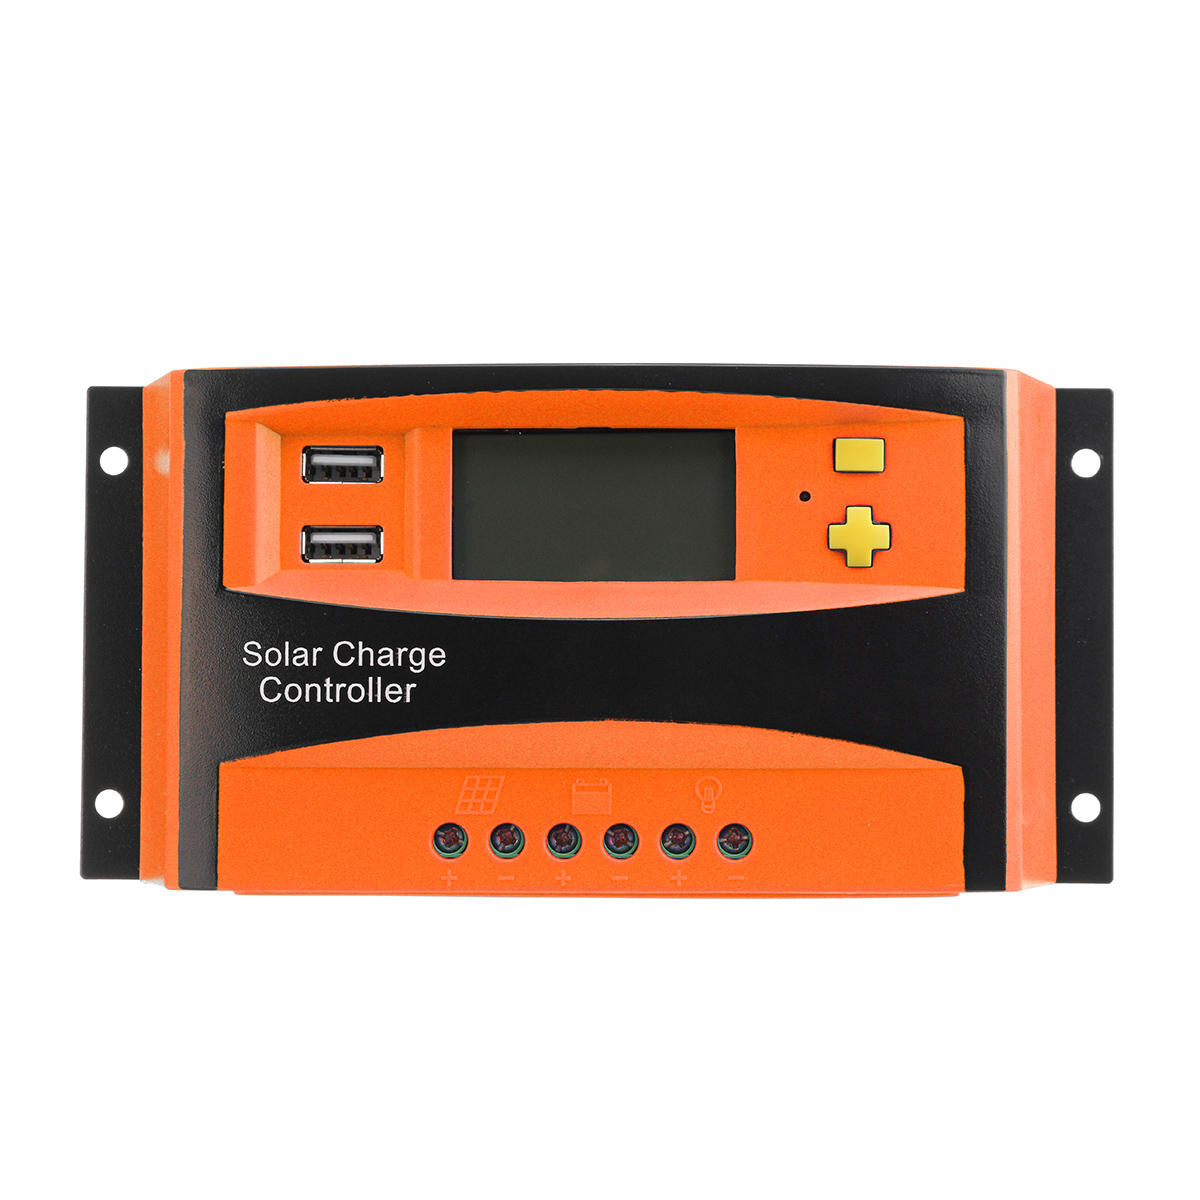 12/24V AUTO 20A/30A/40A/50A/60A Solar Controller Support Dual USB Output & Over-Load Protection for Solar Panel Connecting